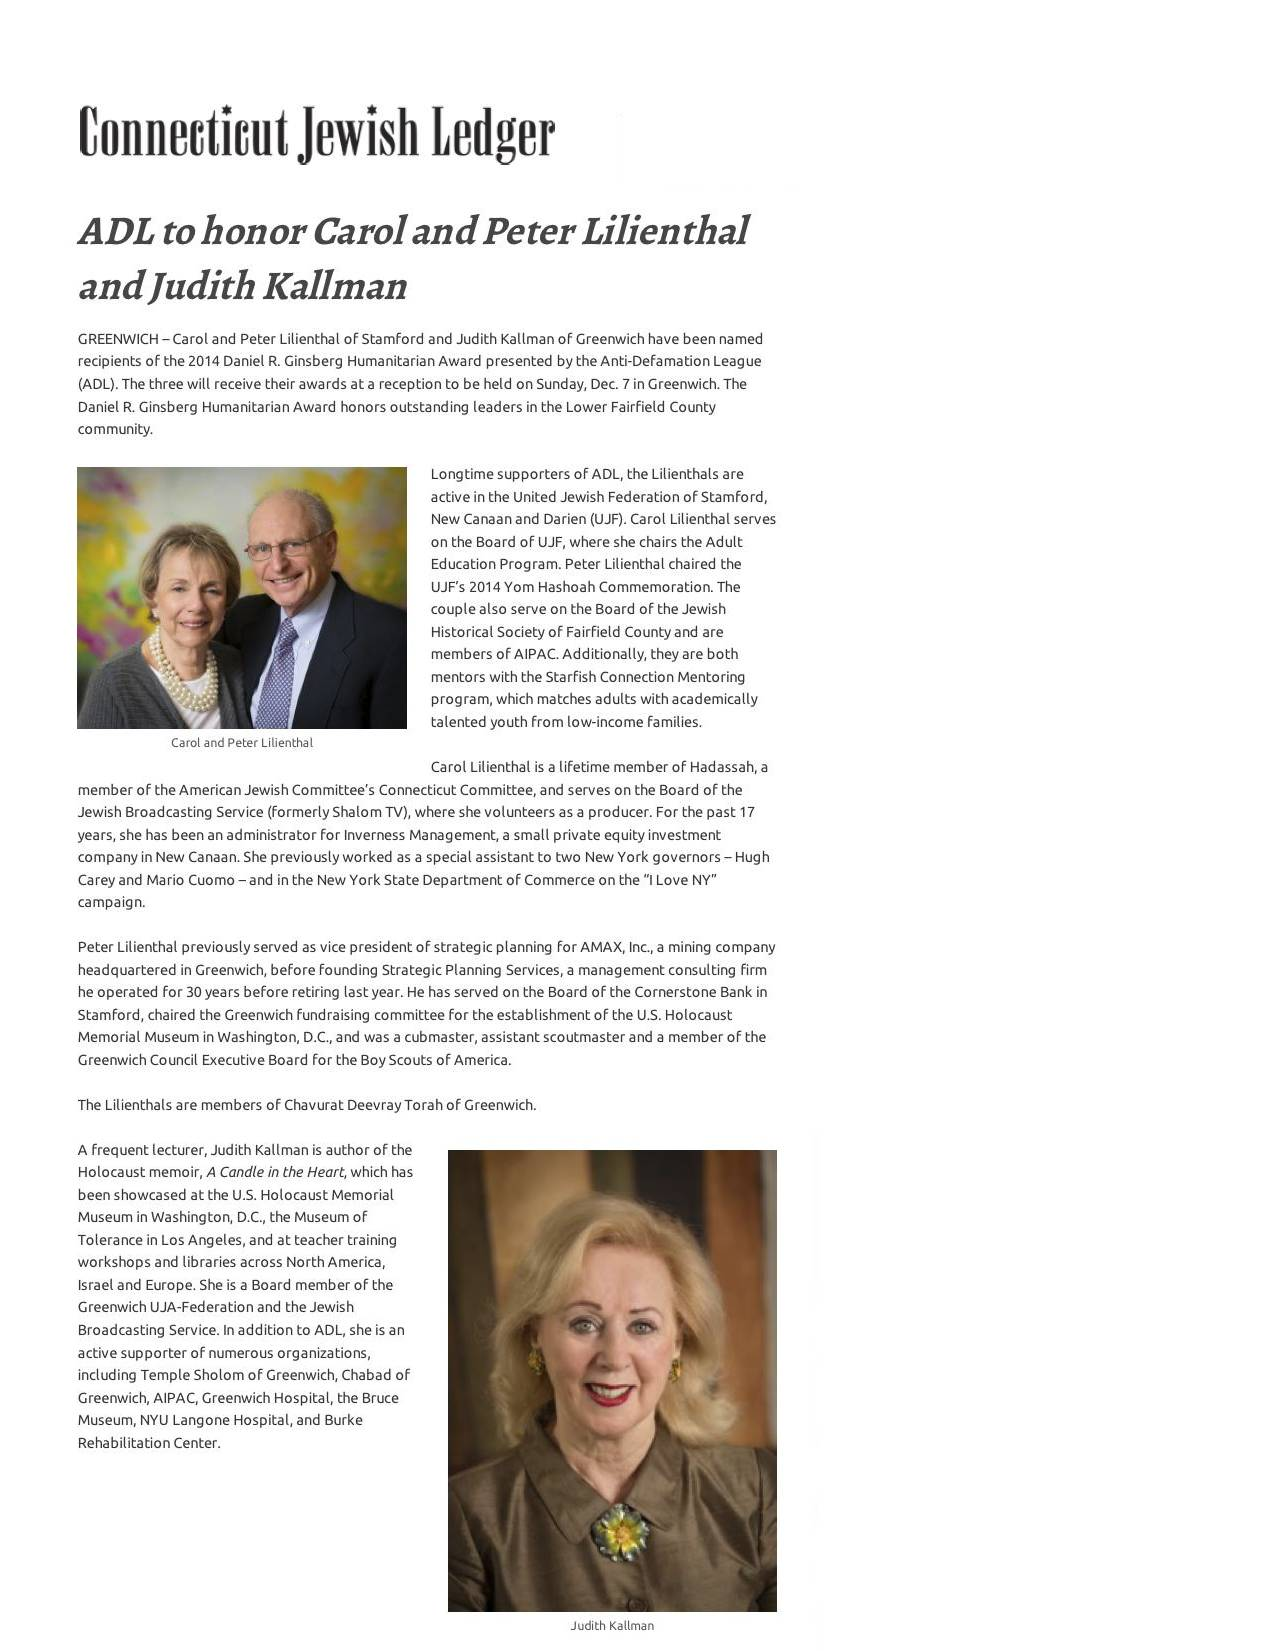 ADL to honor Carol and Peter Lilienthal and Judith Kallman - Jewish Ledger